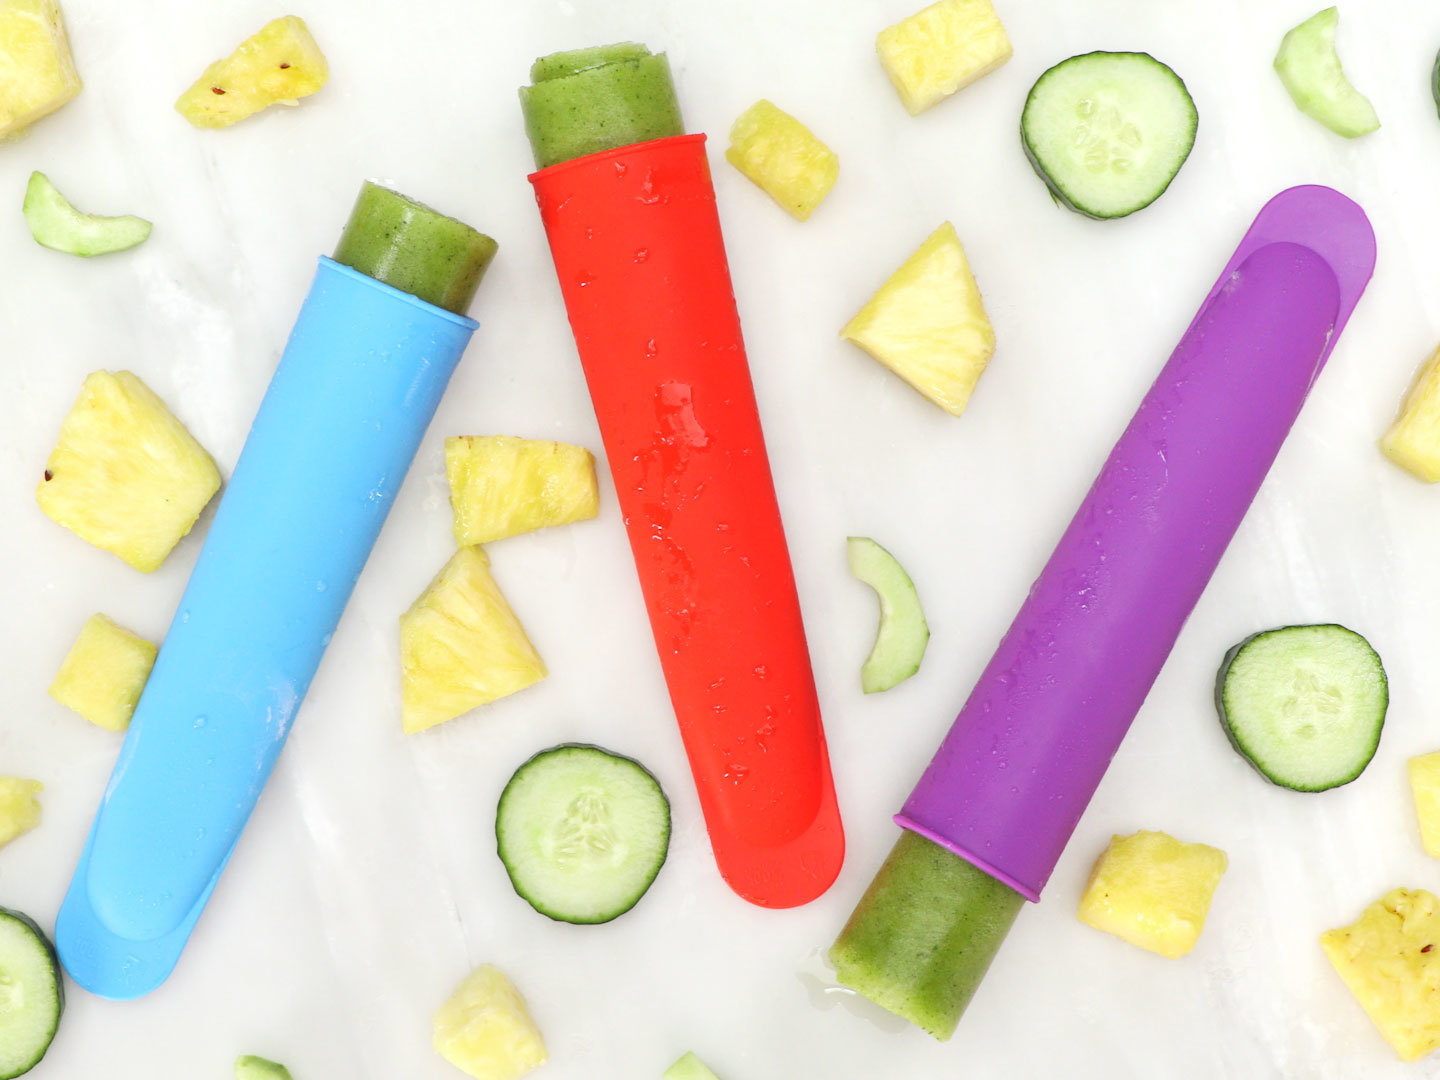 cucumber-pineapple-mint-popsicles-recipe-video